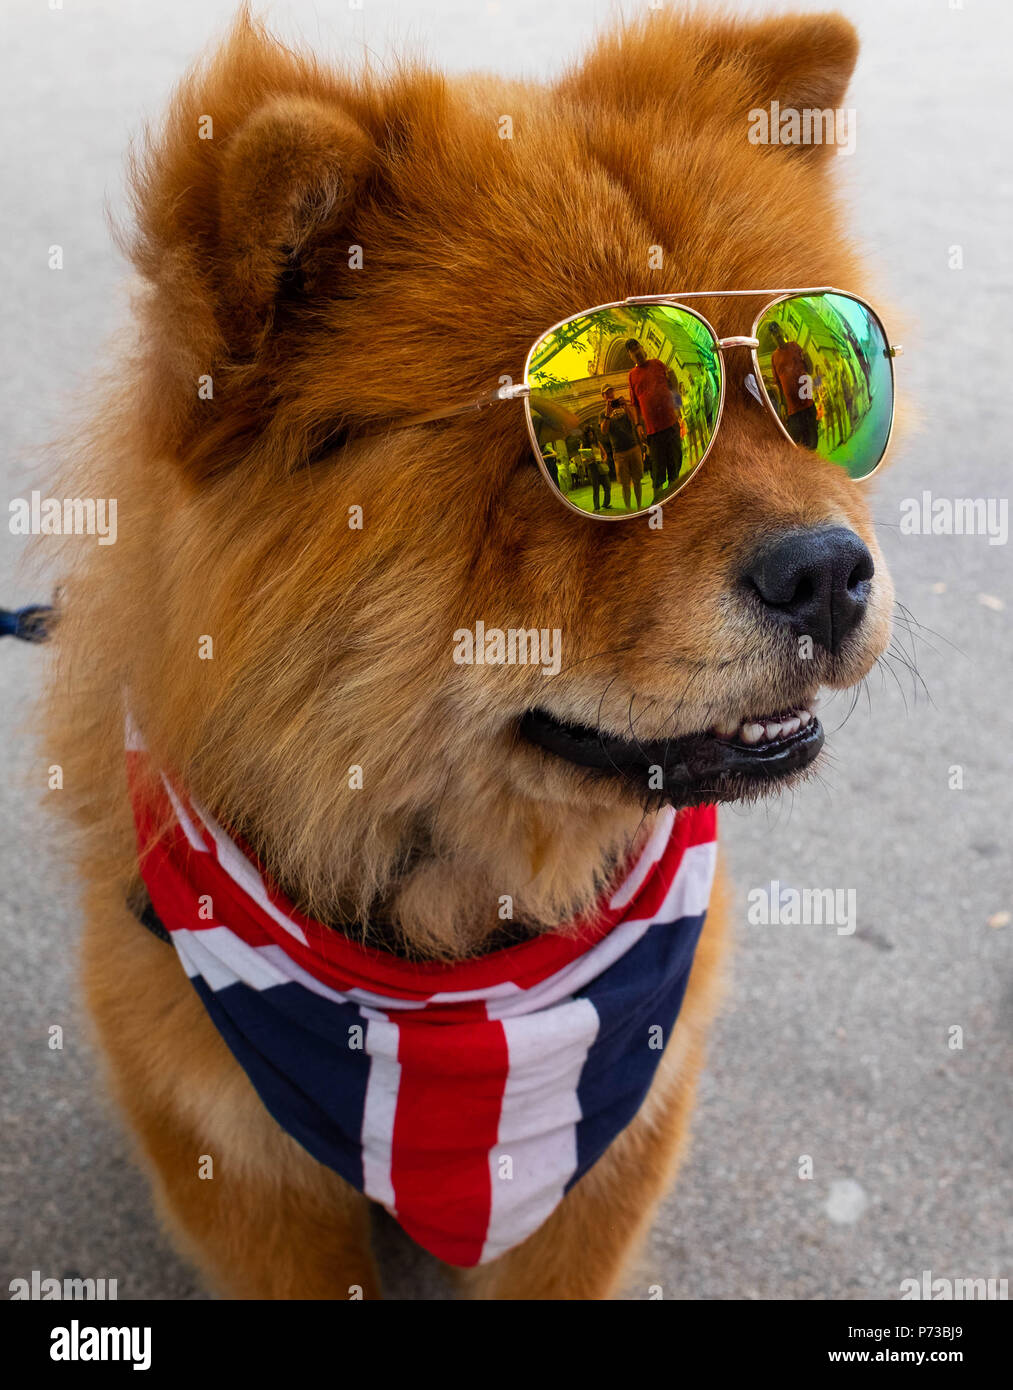 London, England. 4th July 2018. A small dog wears the Union Jack in support of England's success in the World Cup. He wore shades due to the current heatwave in London. ©Tim Ring/Alamy Live News Stock Photo